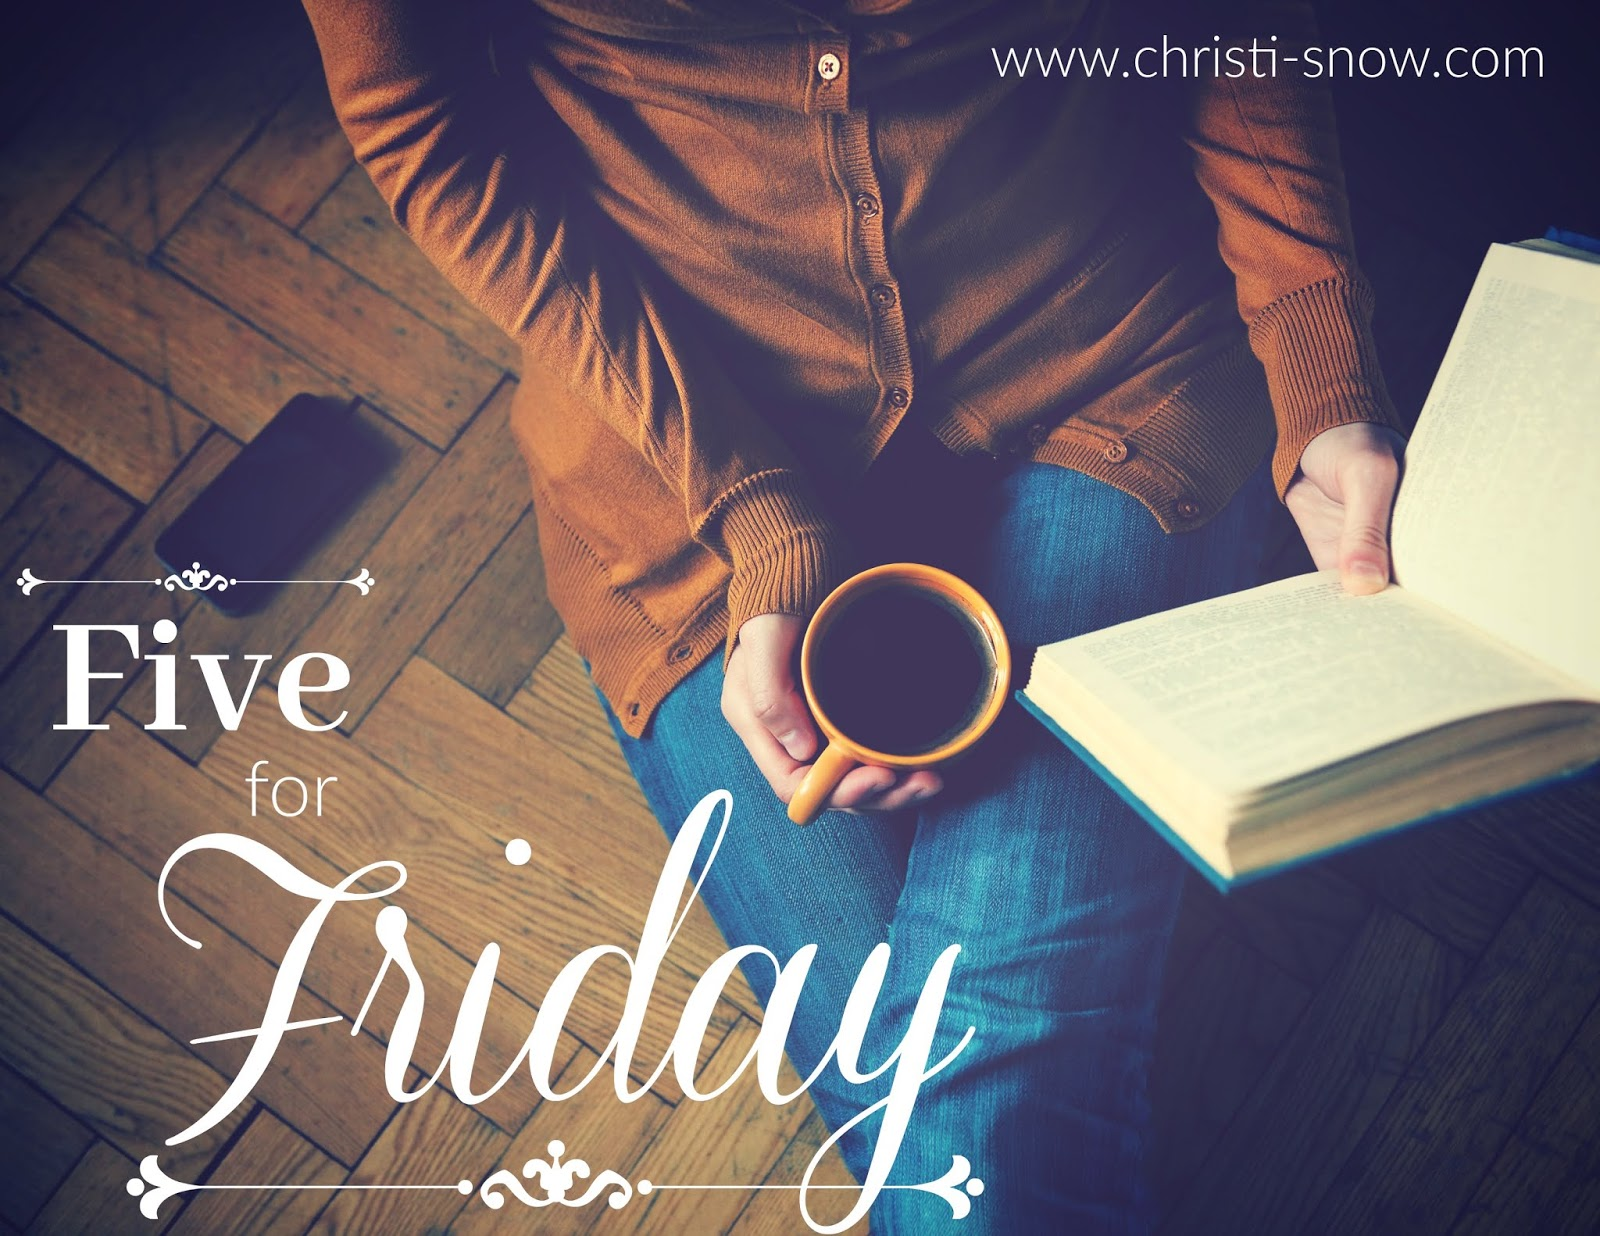 Lets talk about Friday. What does Friday mean for Muslims